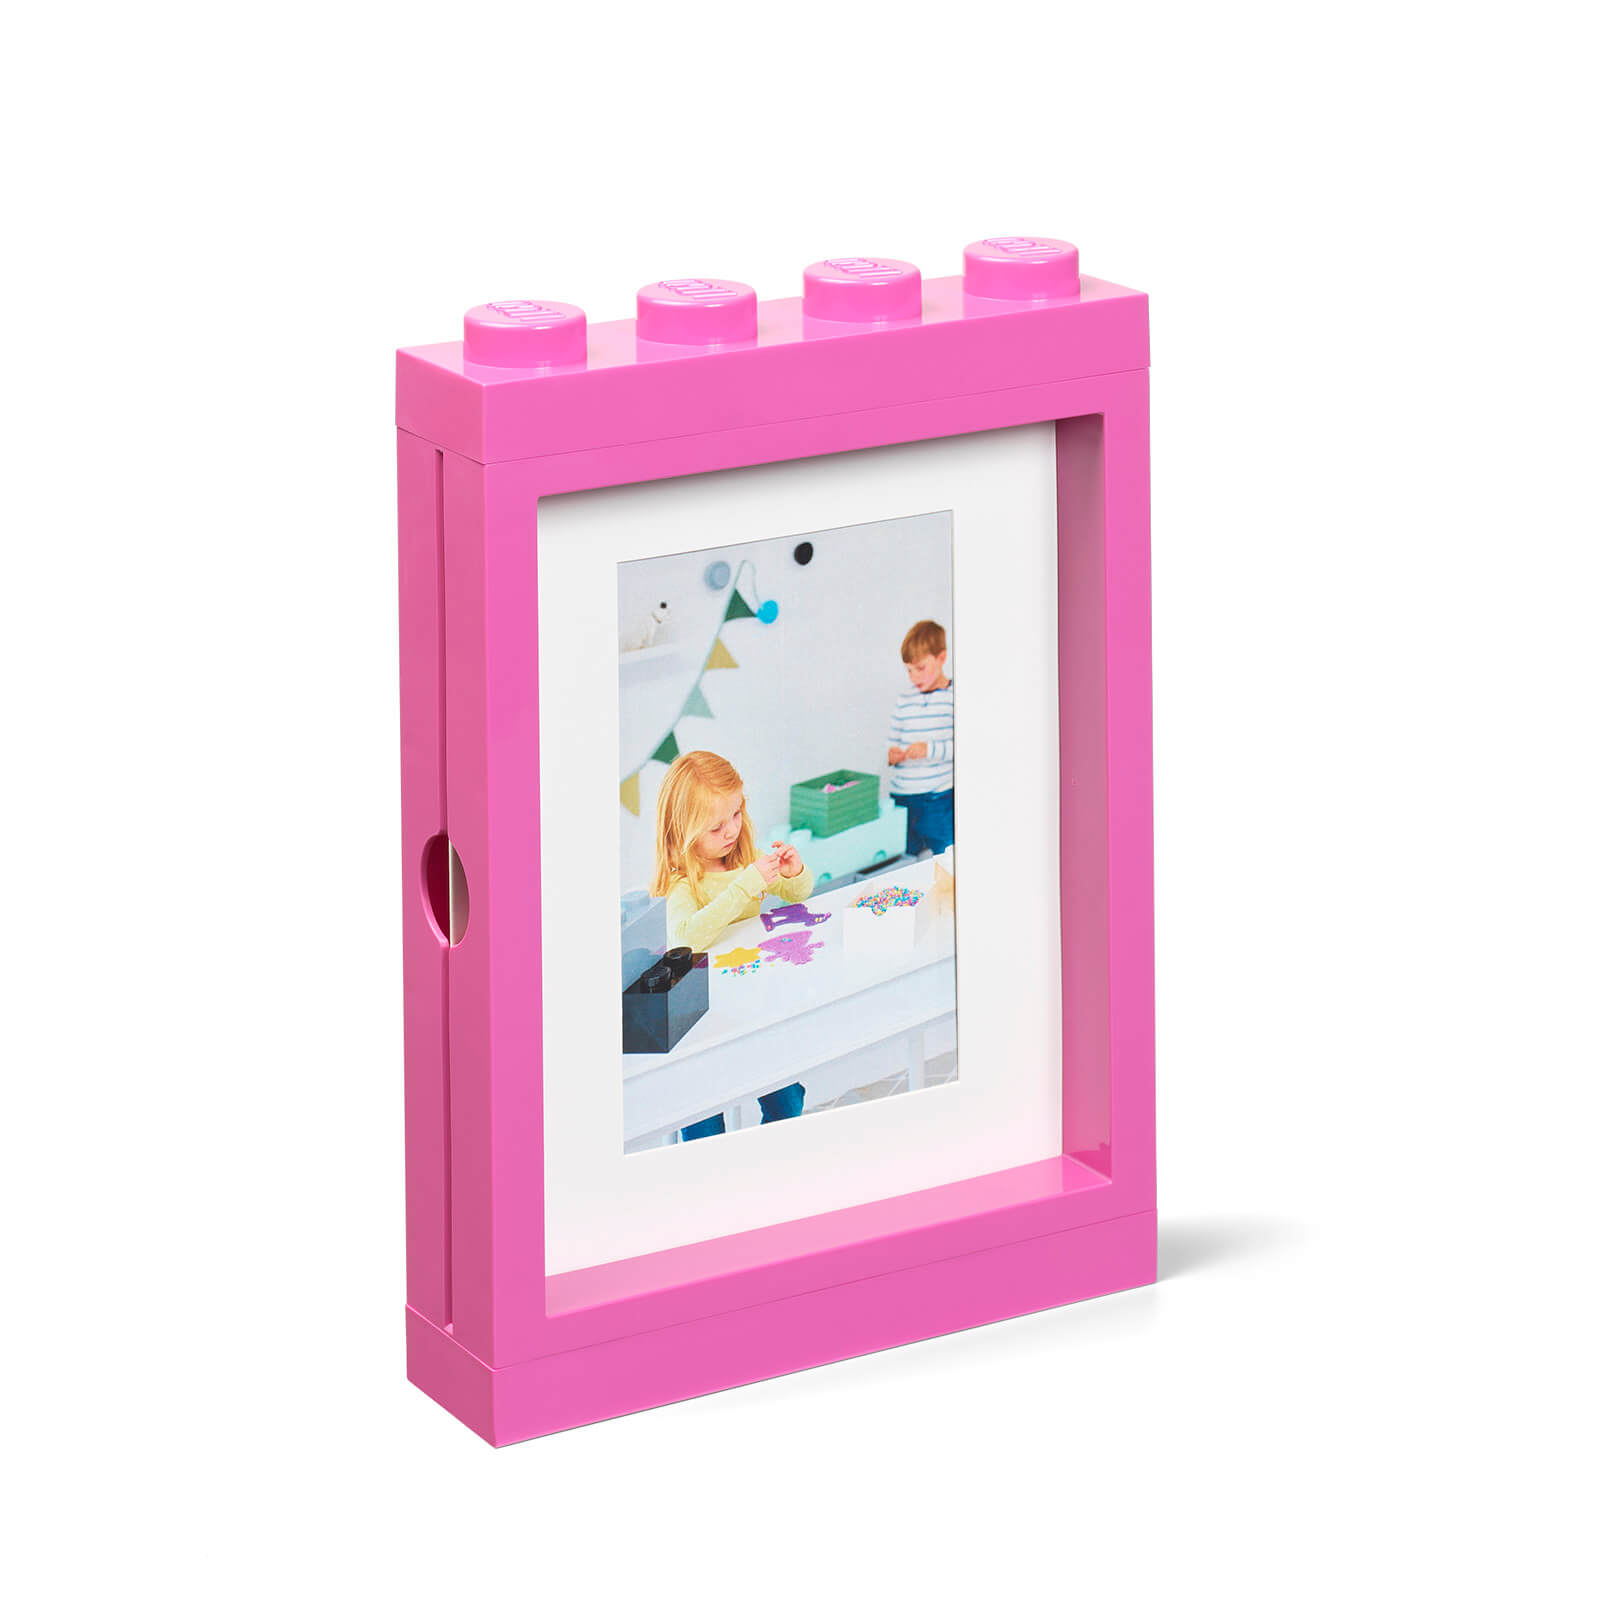 Image of LEGO Picture Frame - Pink